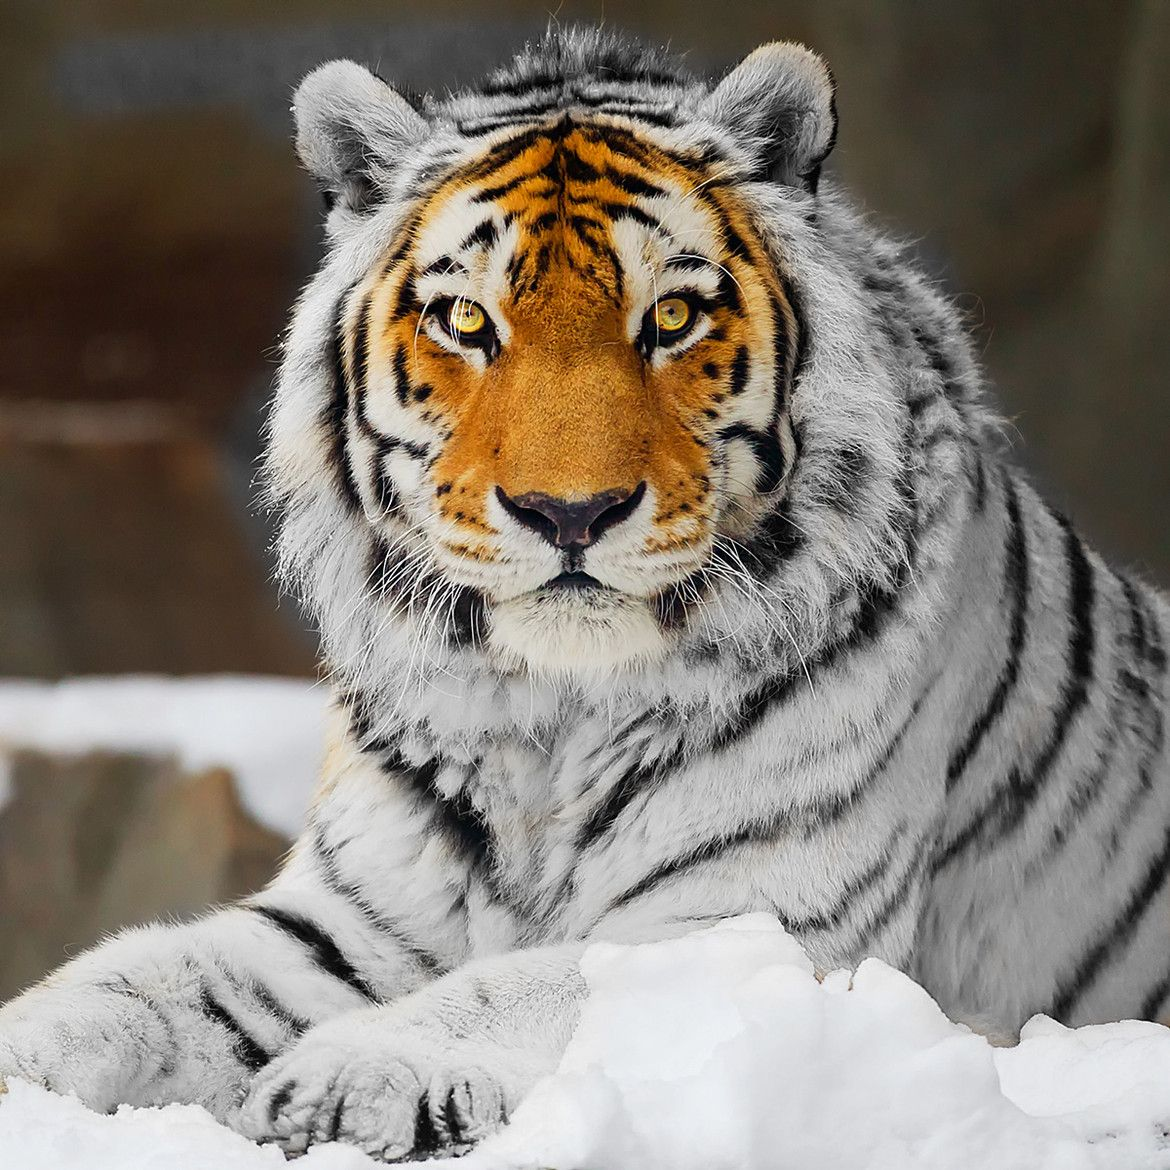 Tiger: White Tiger With Orange Face. Unique!